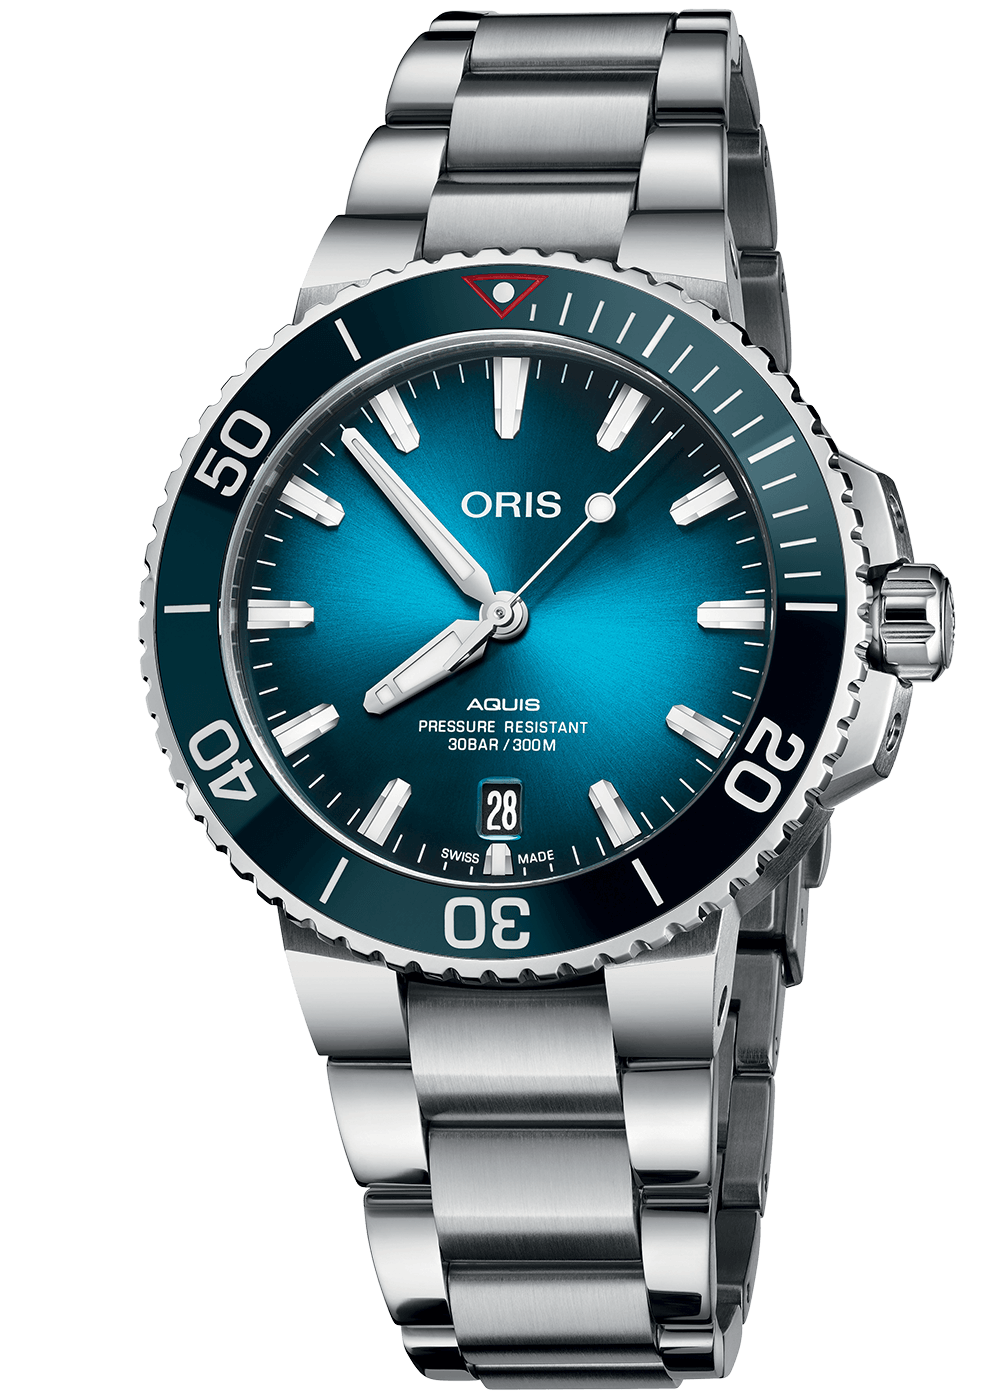 Aquis Clean Ocean Limited Edition Zurich